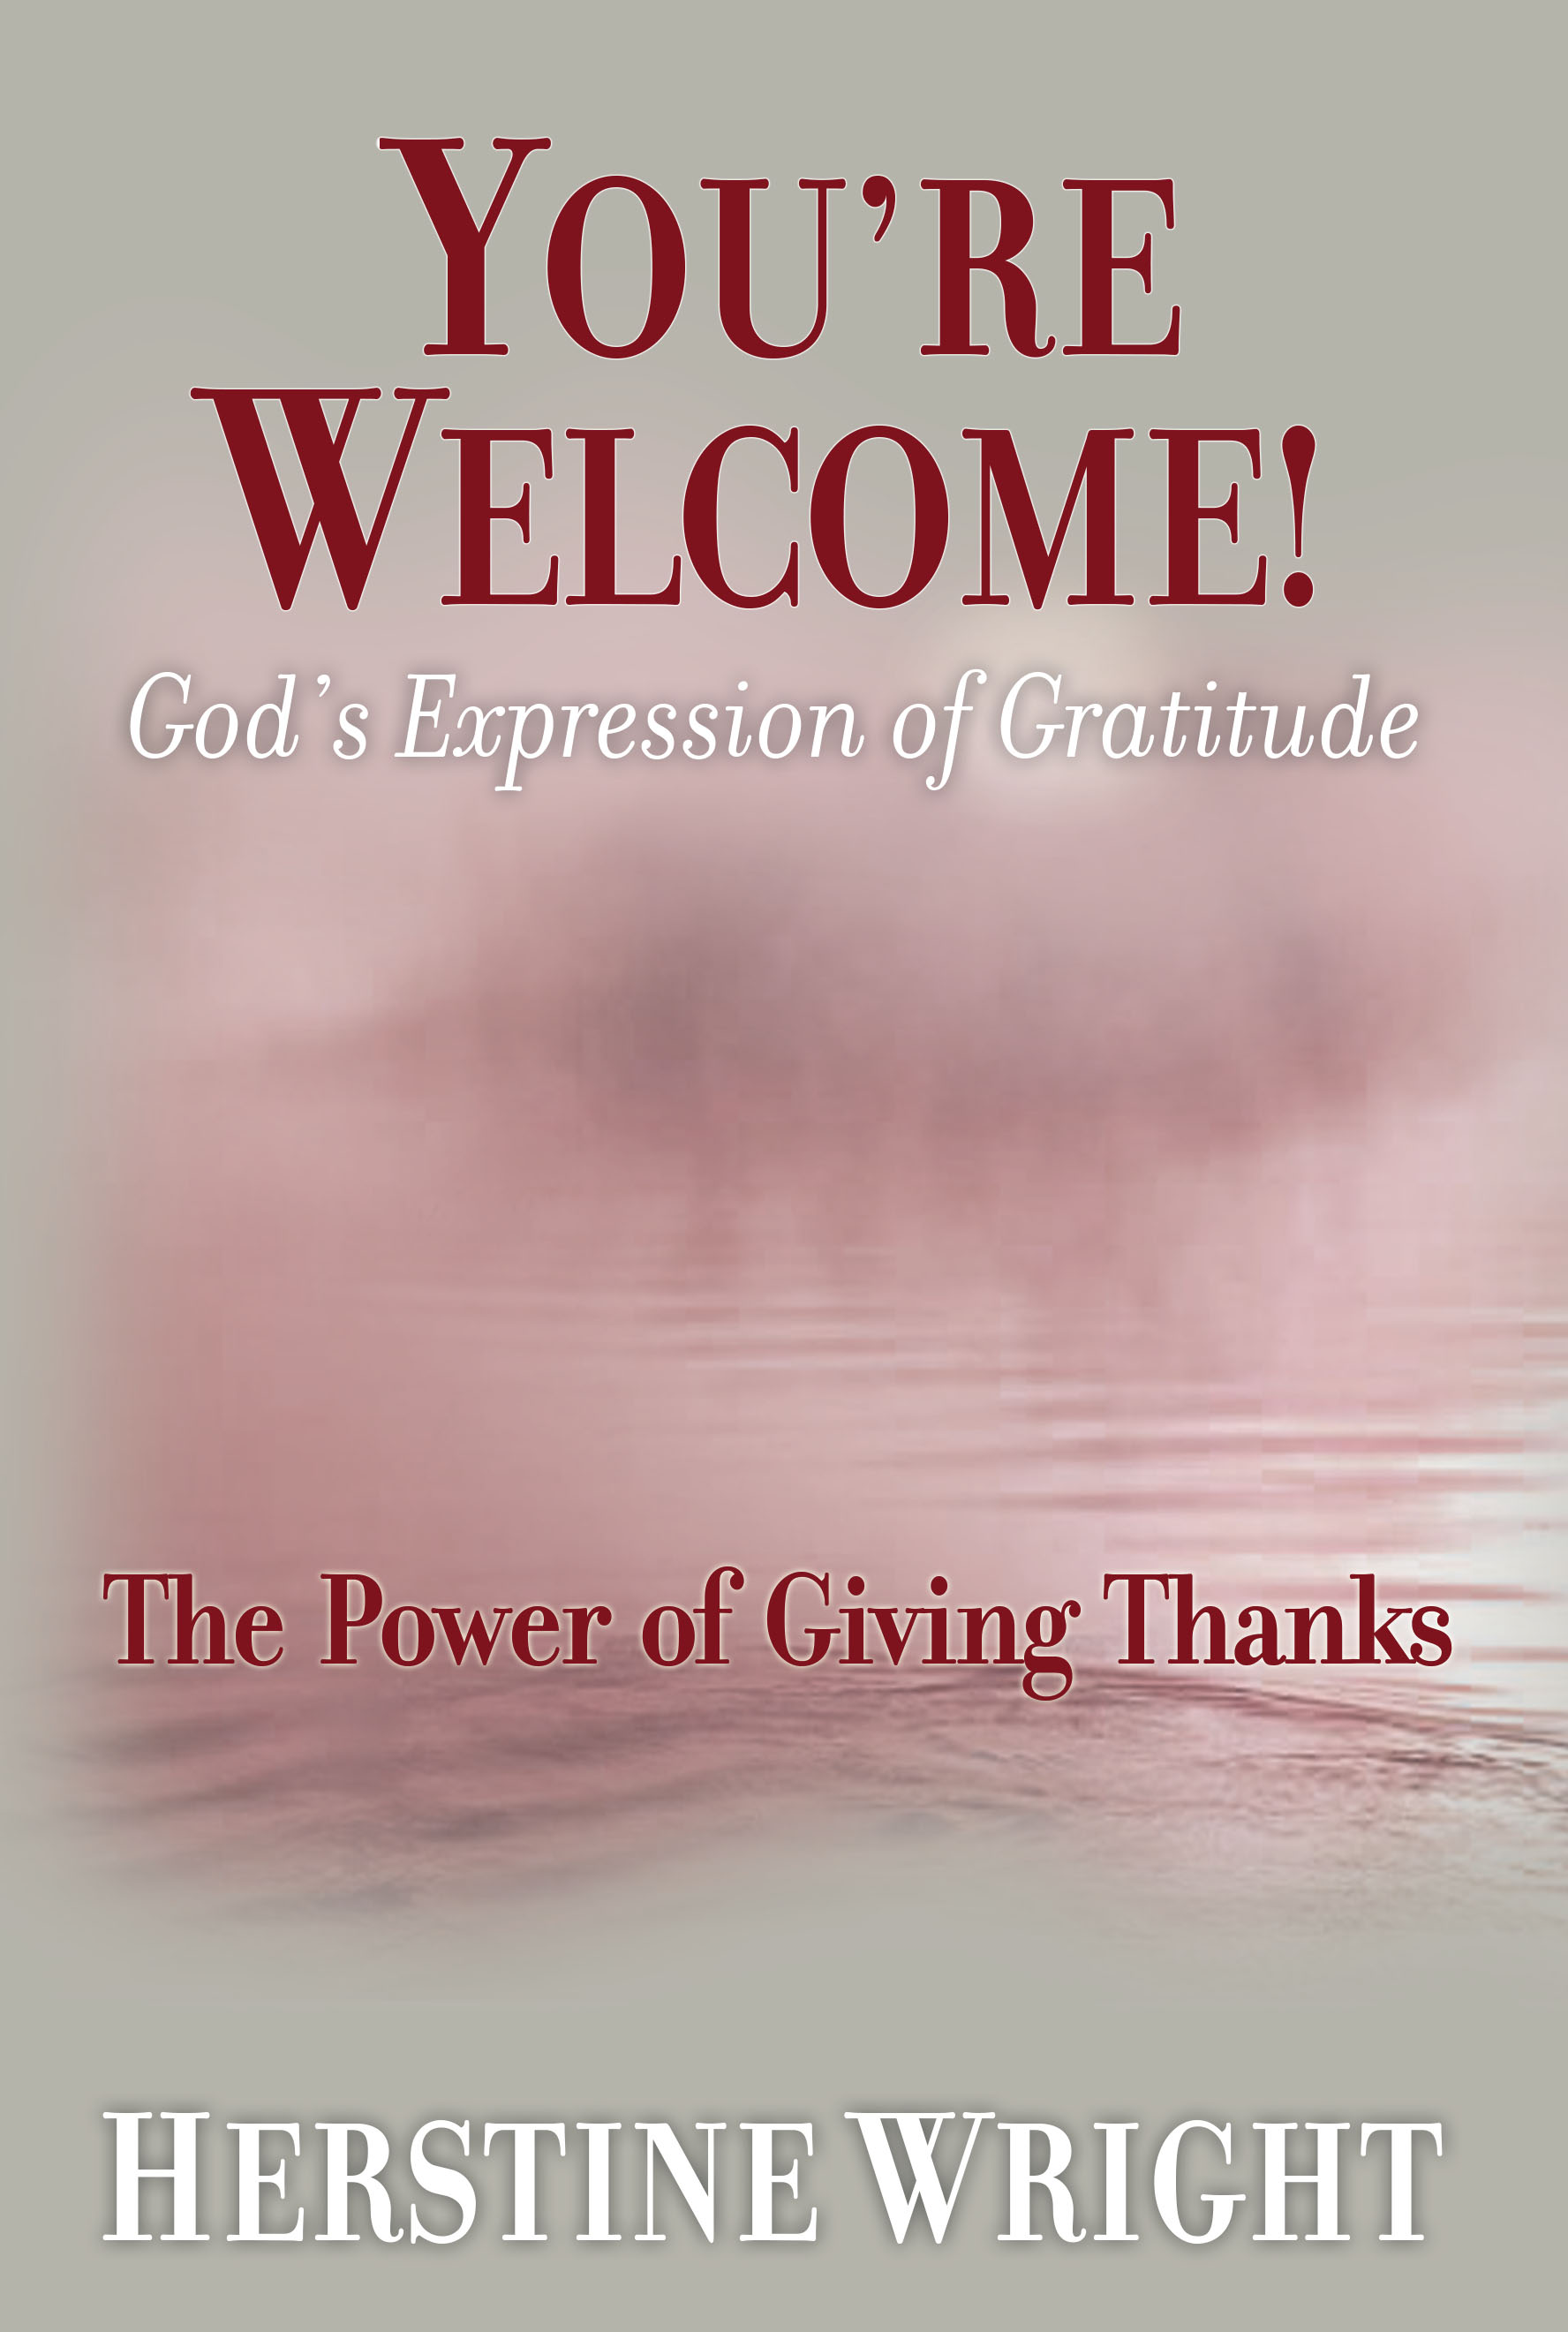 YOU'RE WELCOME! God's Expression of Gratitude